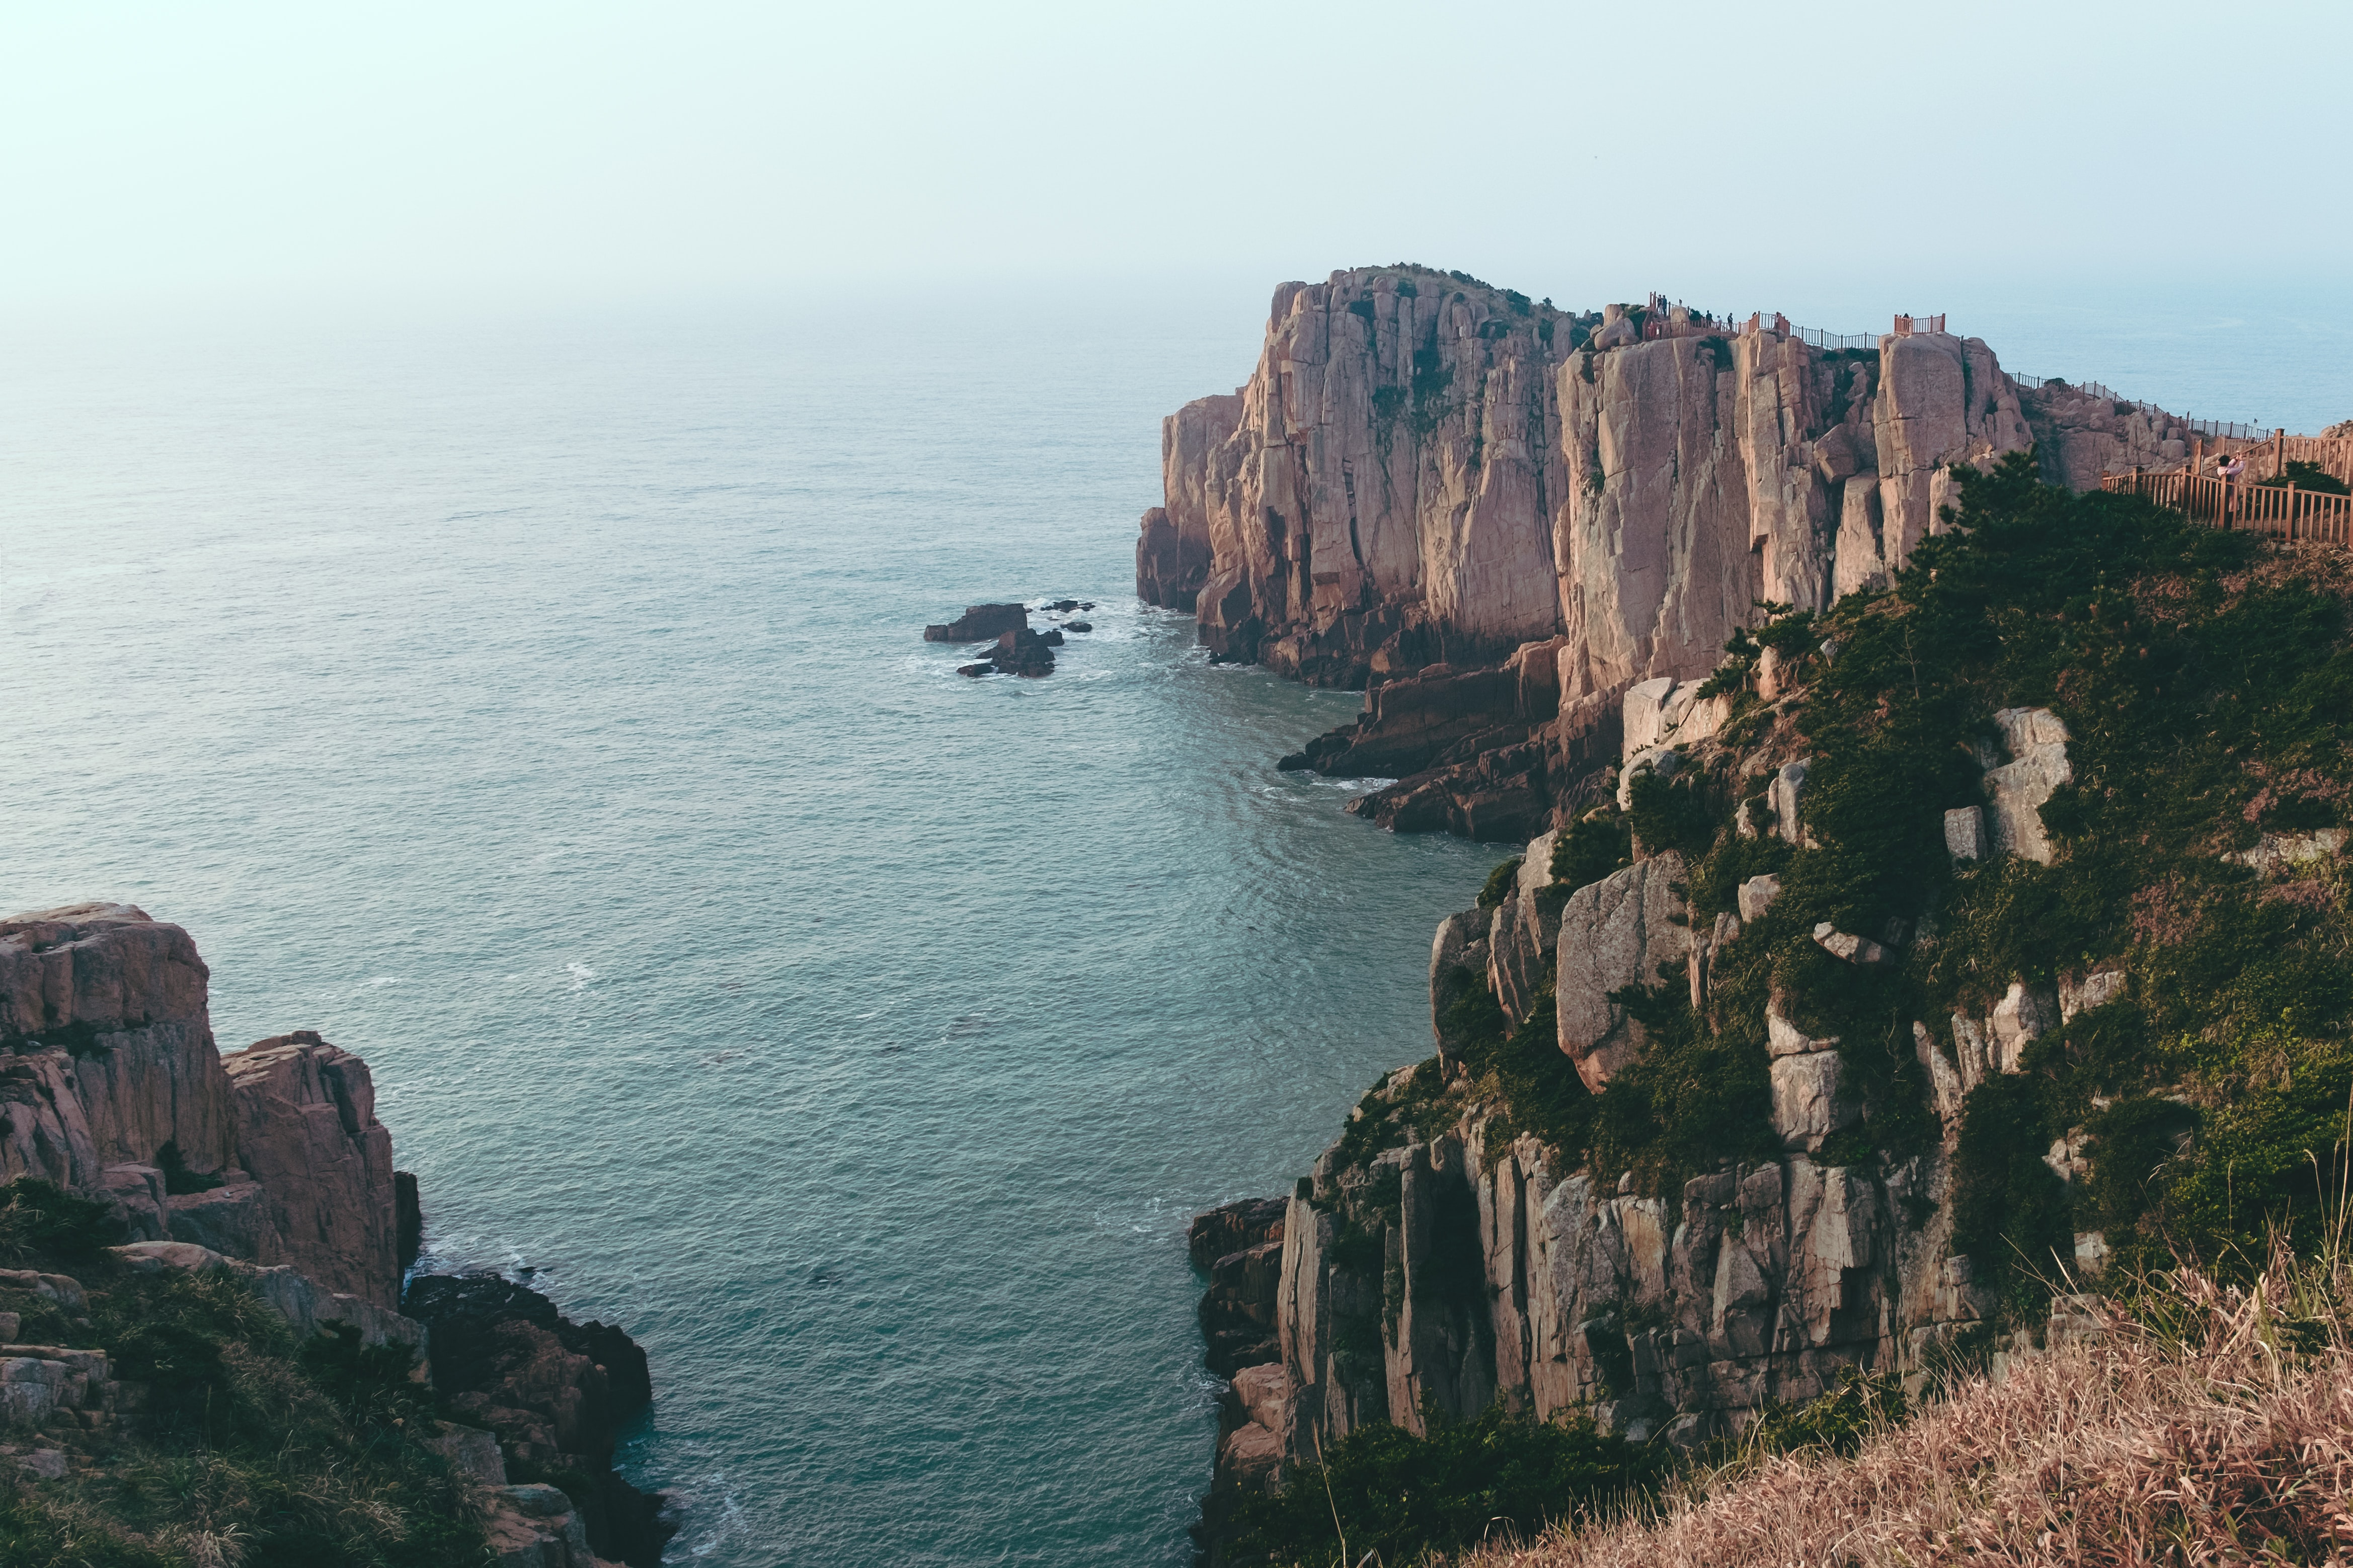 gray and green rock formation near sea during daytime